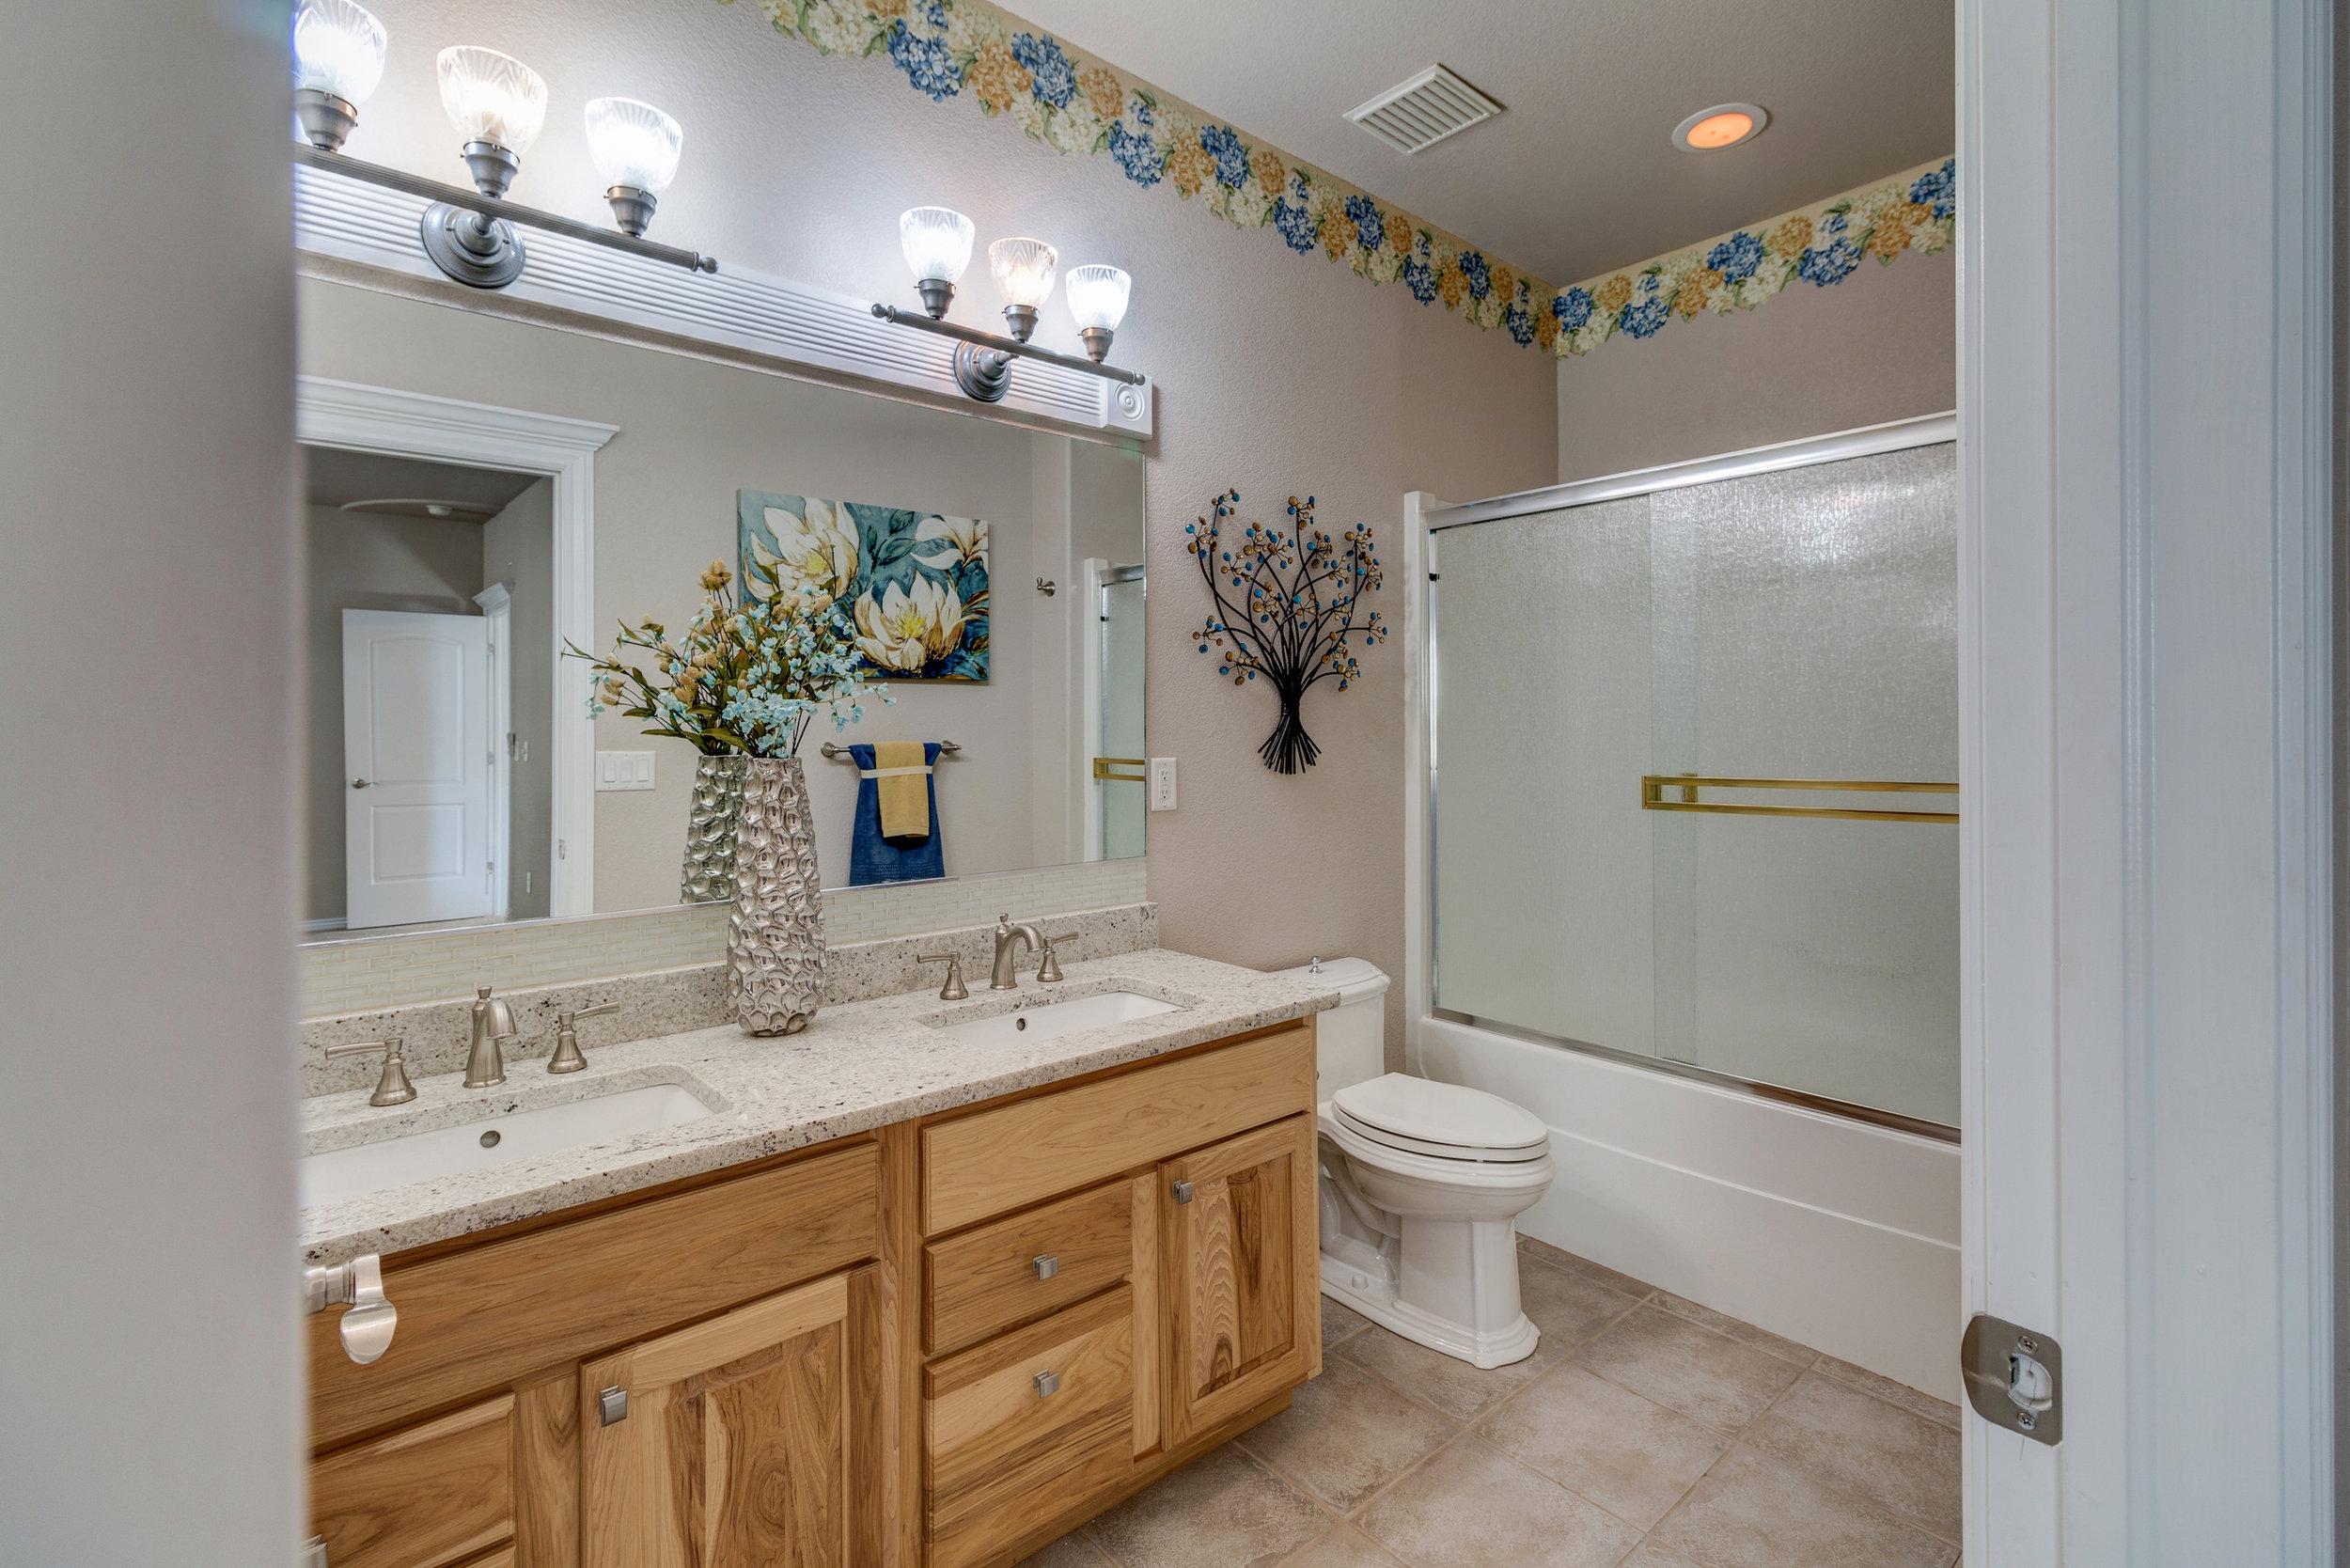 32 - Guest Bathroom.jpg